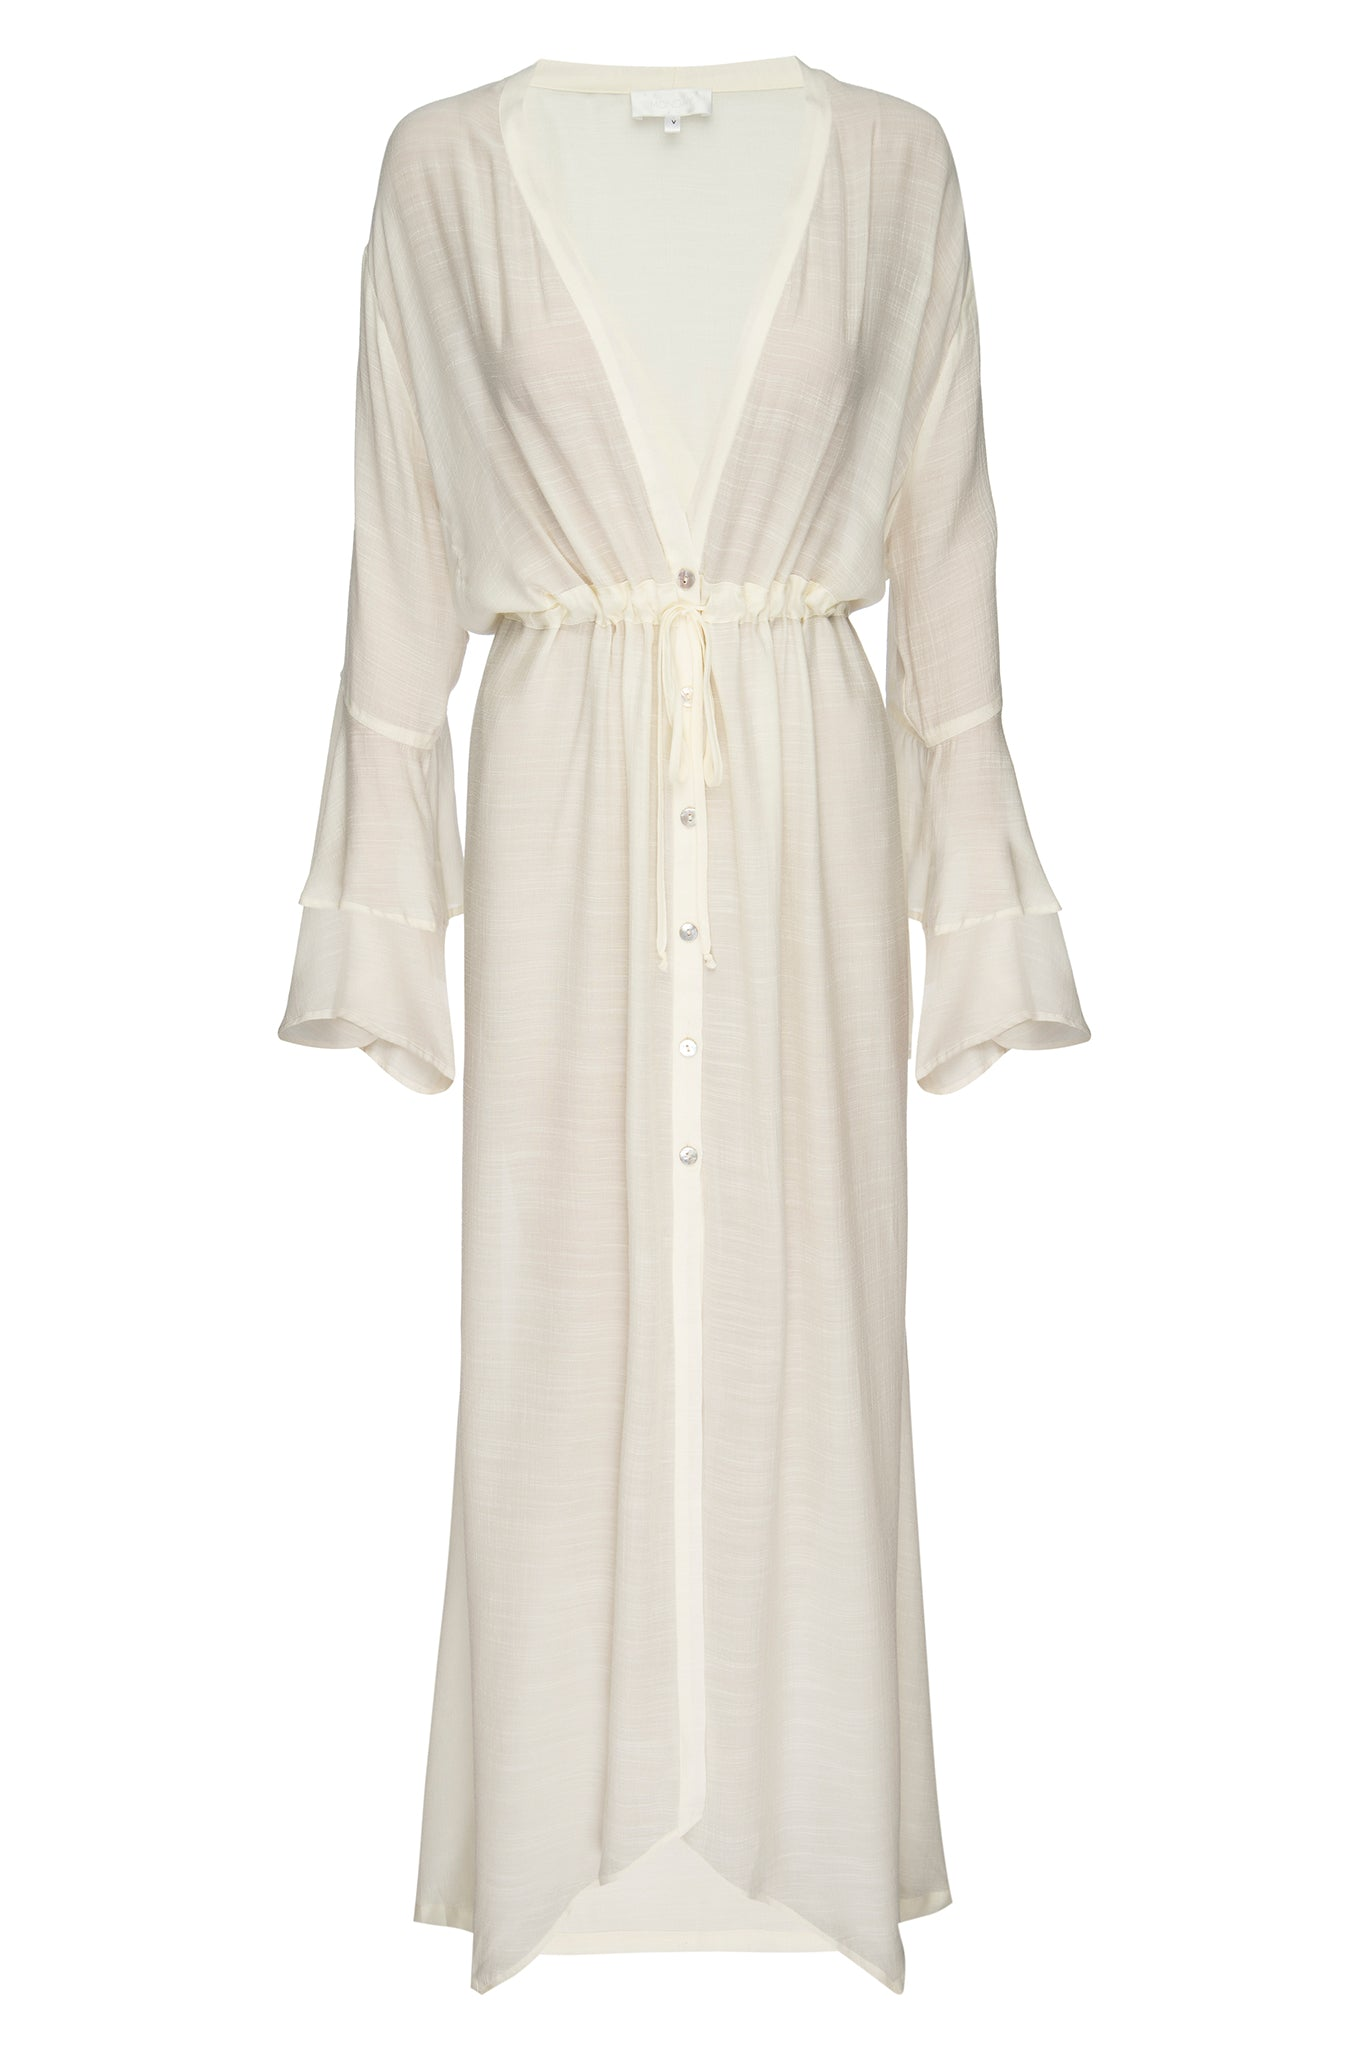 Load image into Gallery viewer, Belize Dress - Ivory